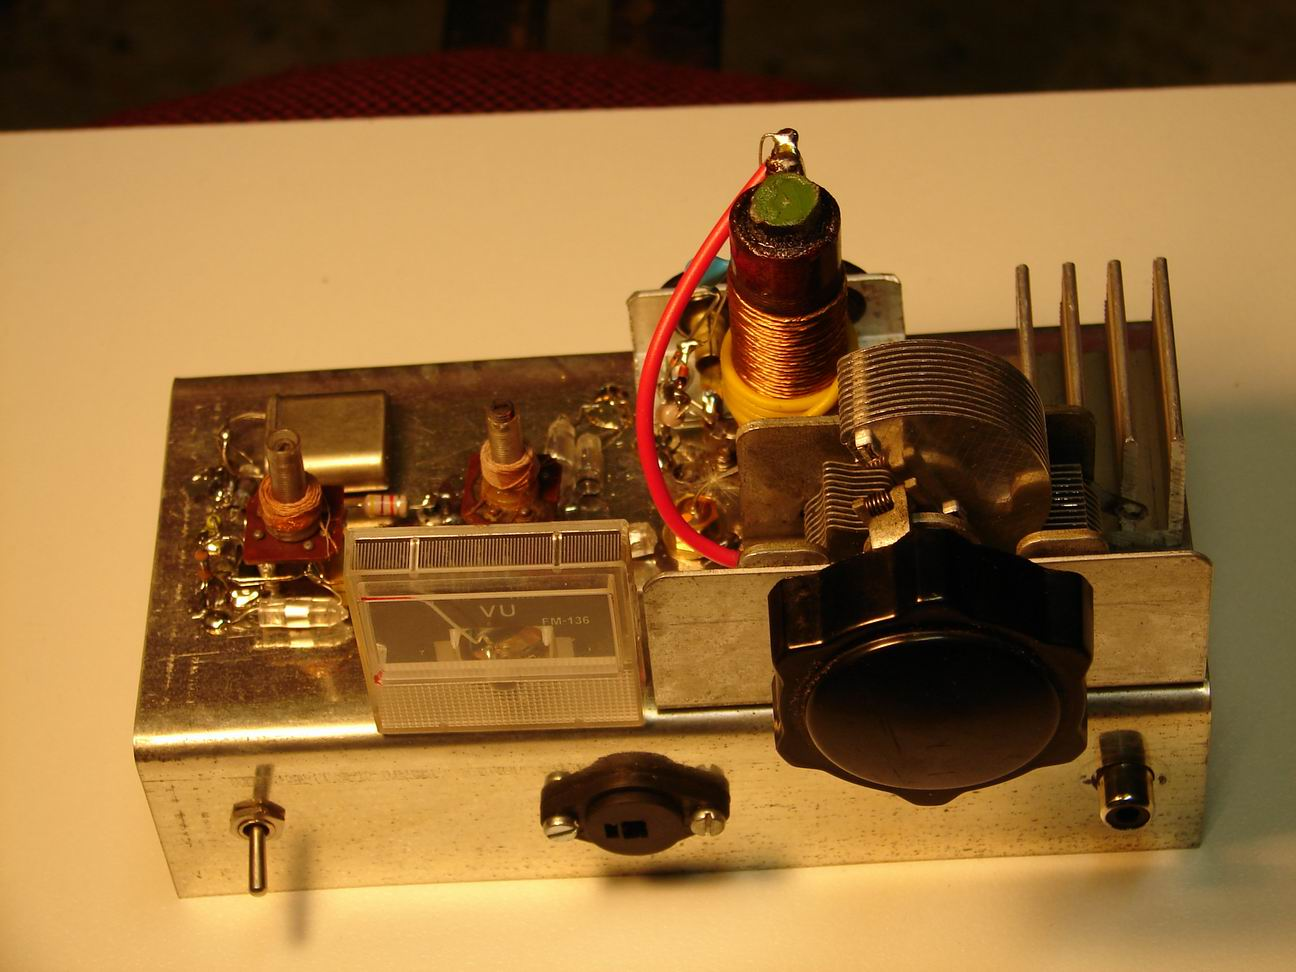 1 Watt Mw Transmitter To Broadcast Sgnal For Old Radios Circuit